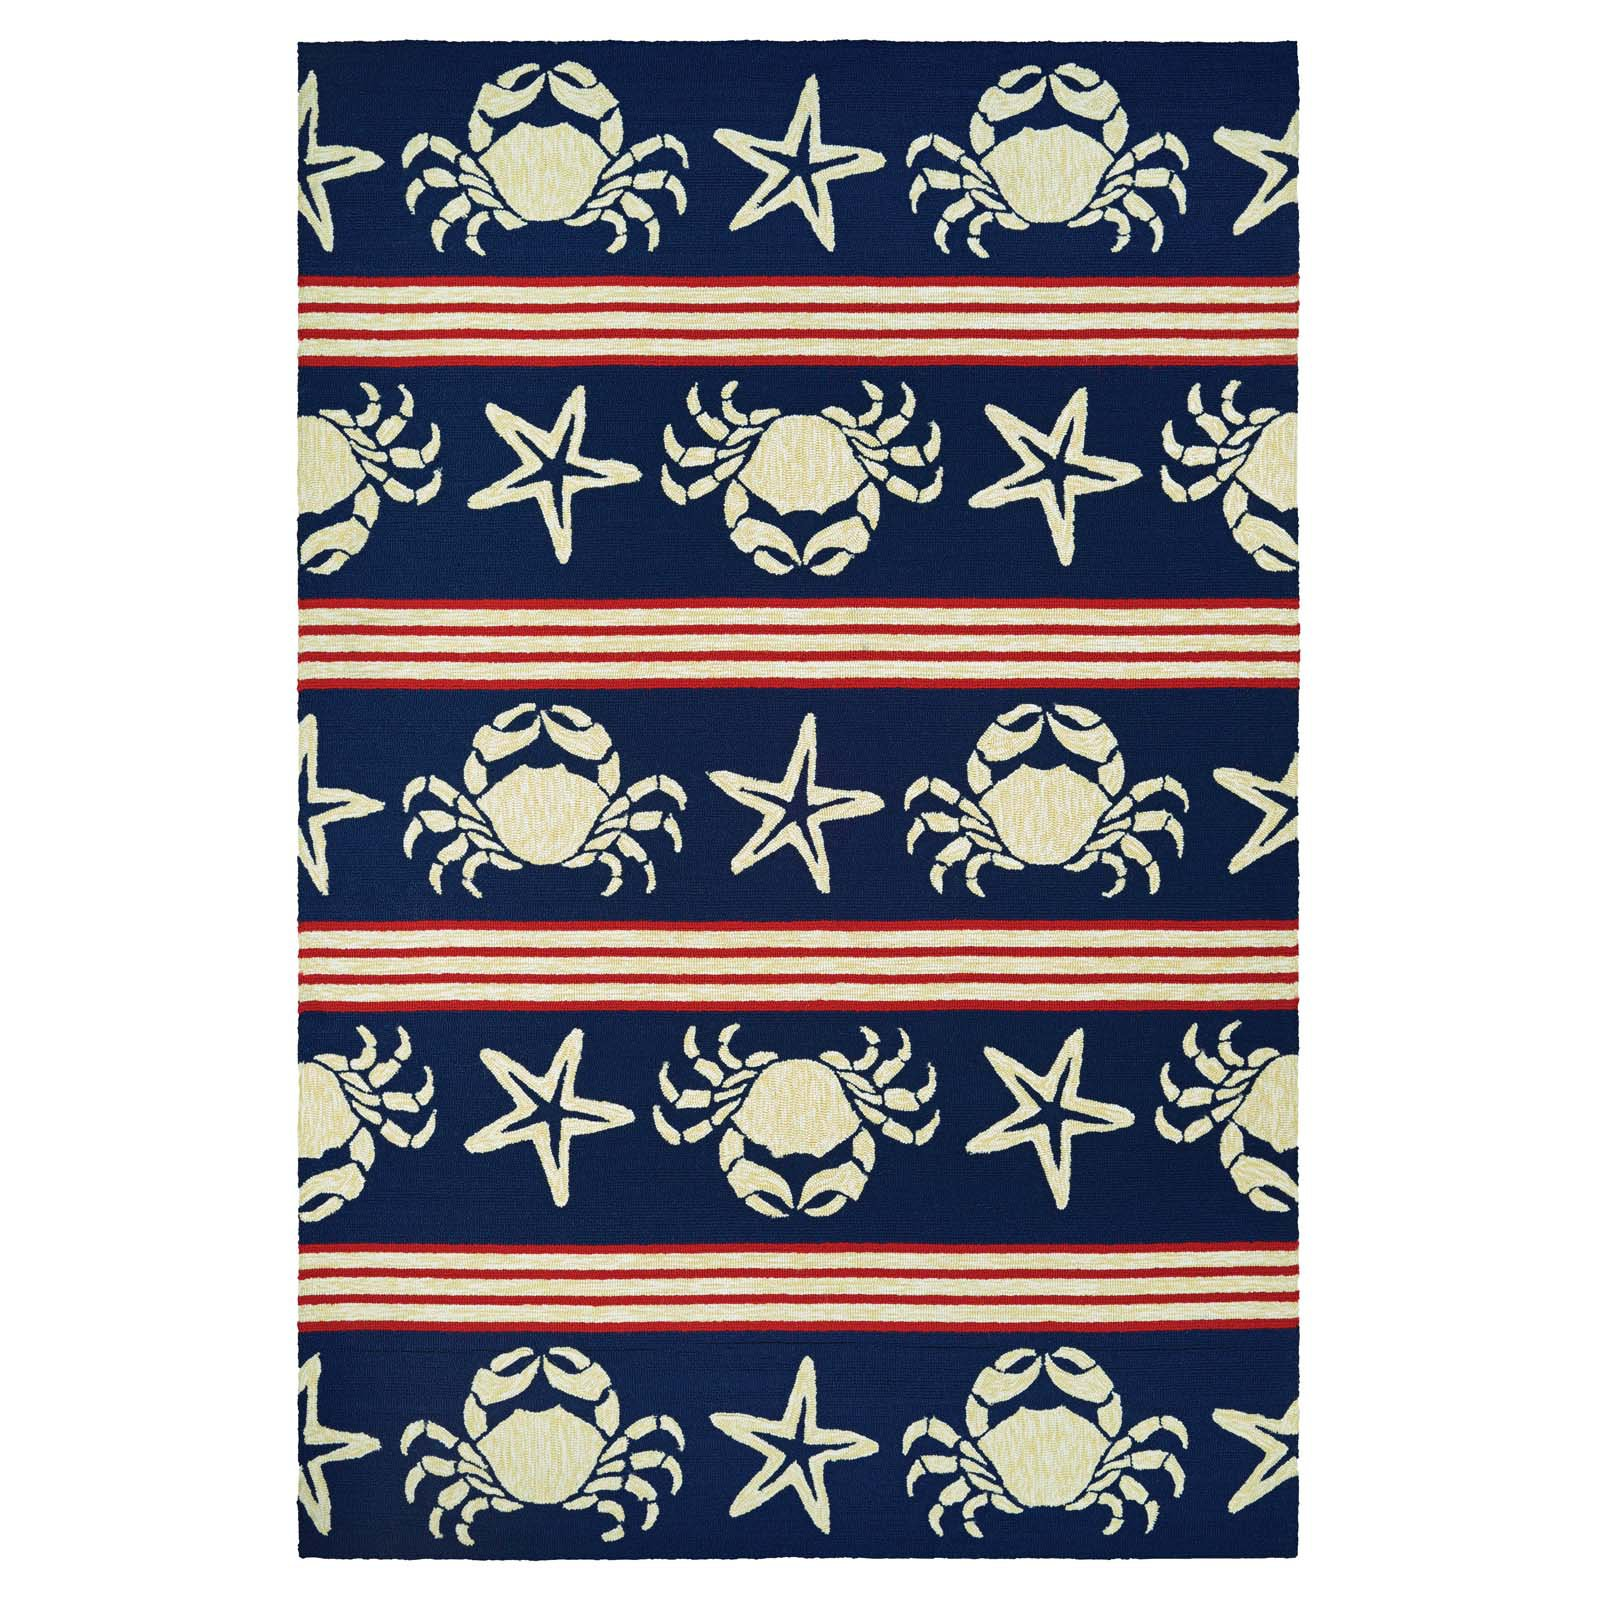 Couristan Outdoor Escape Blue Claws Navy Indoor/Outdoor Runner Rug